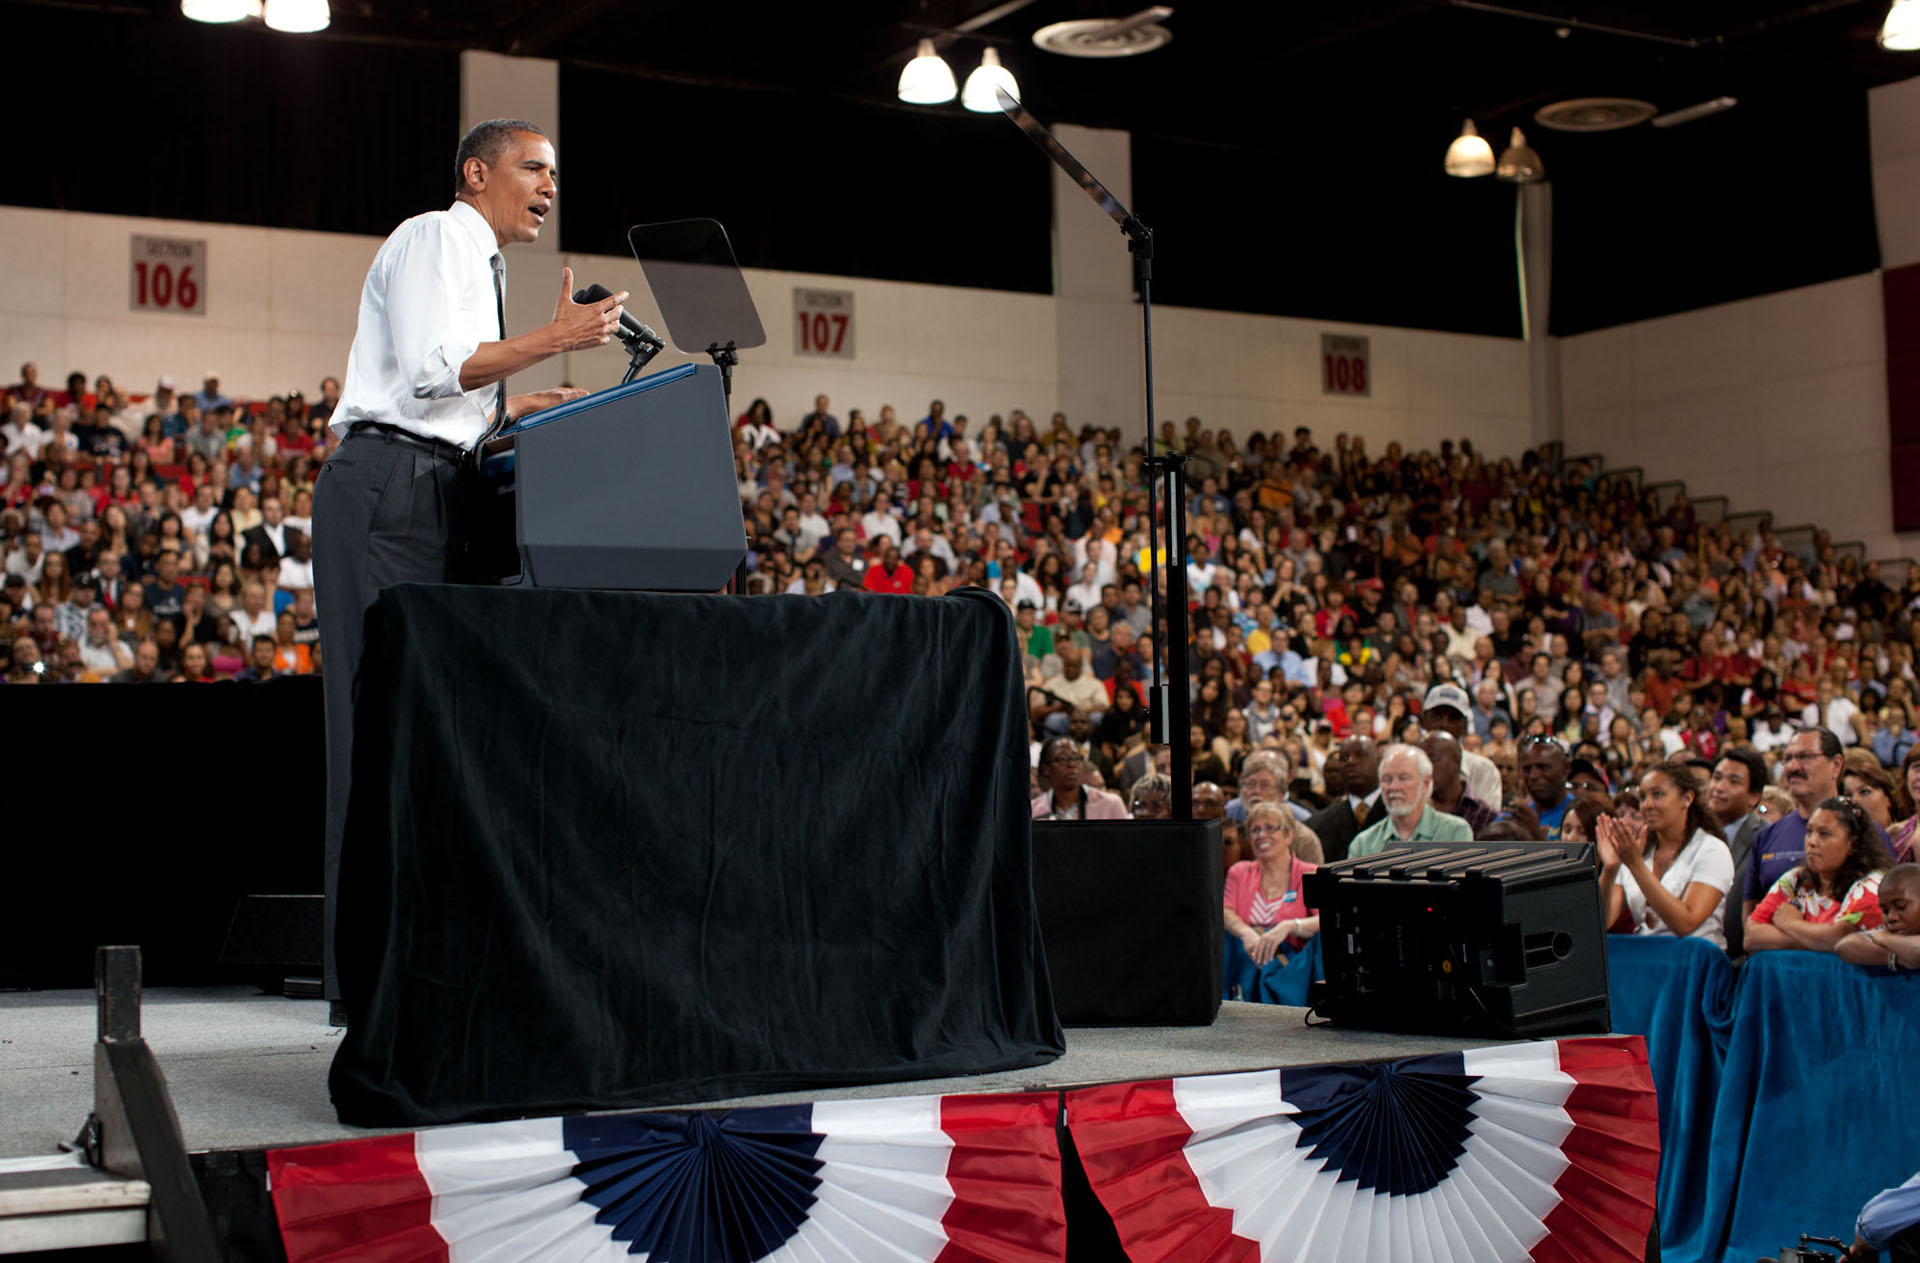 President Barack Obama delivers remarks on college affordability at UNLV (June 7, 2012)